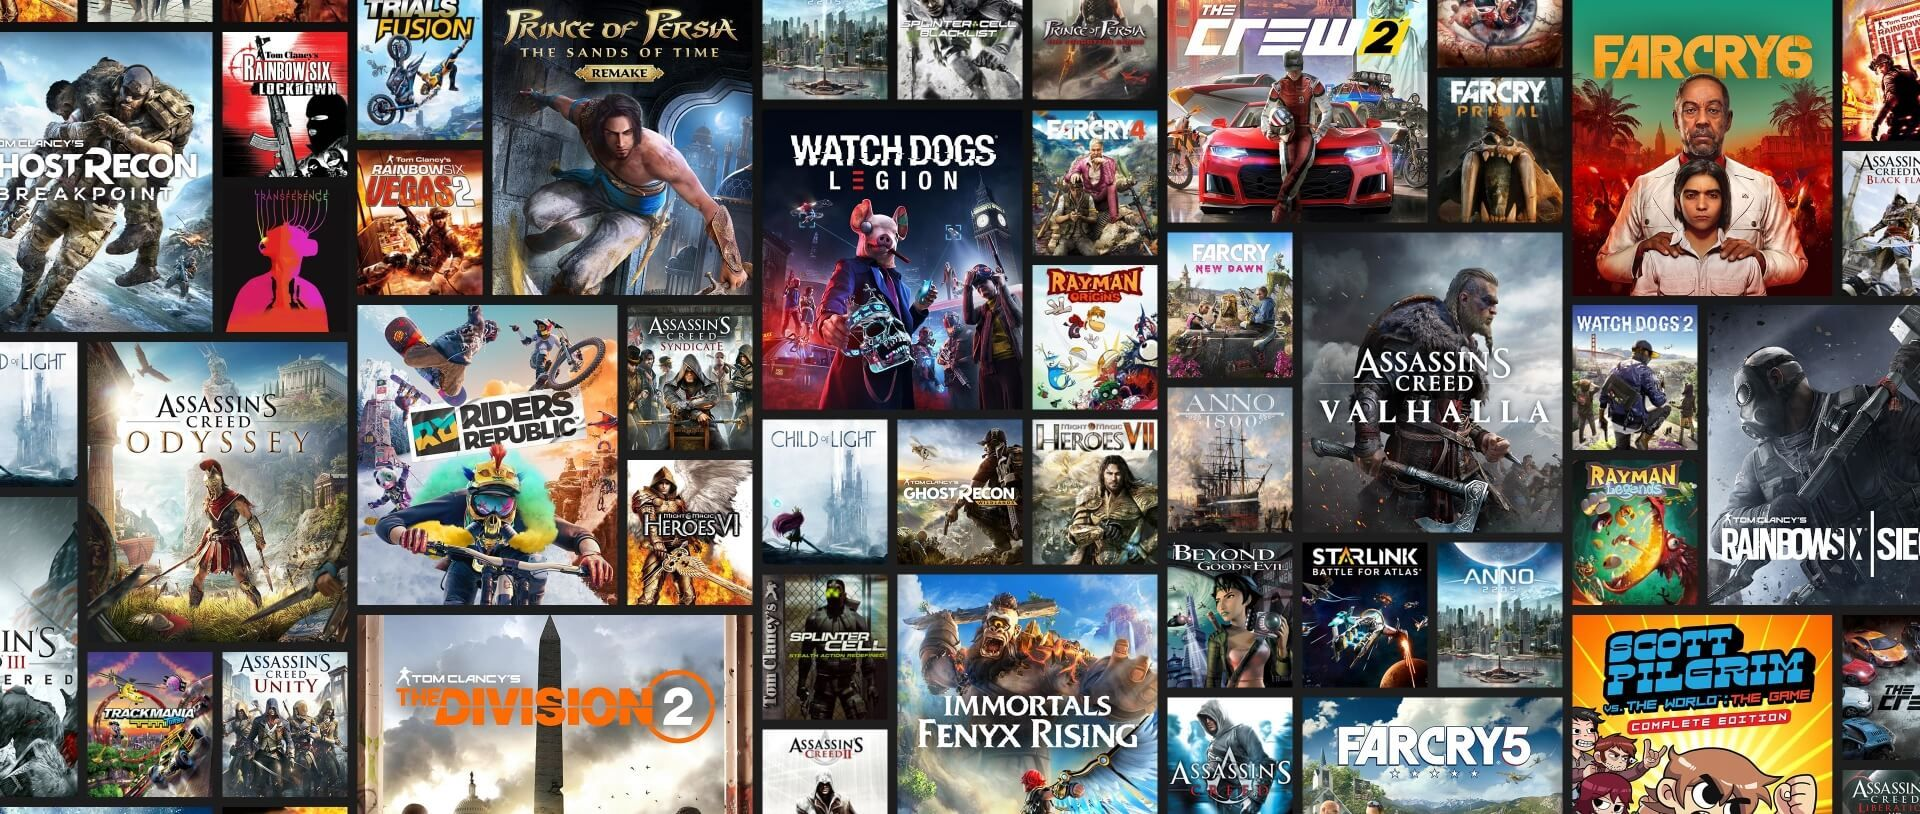 EVERY SINGLE GAME YOU OWN IS SHUTTING DOWN!